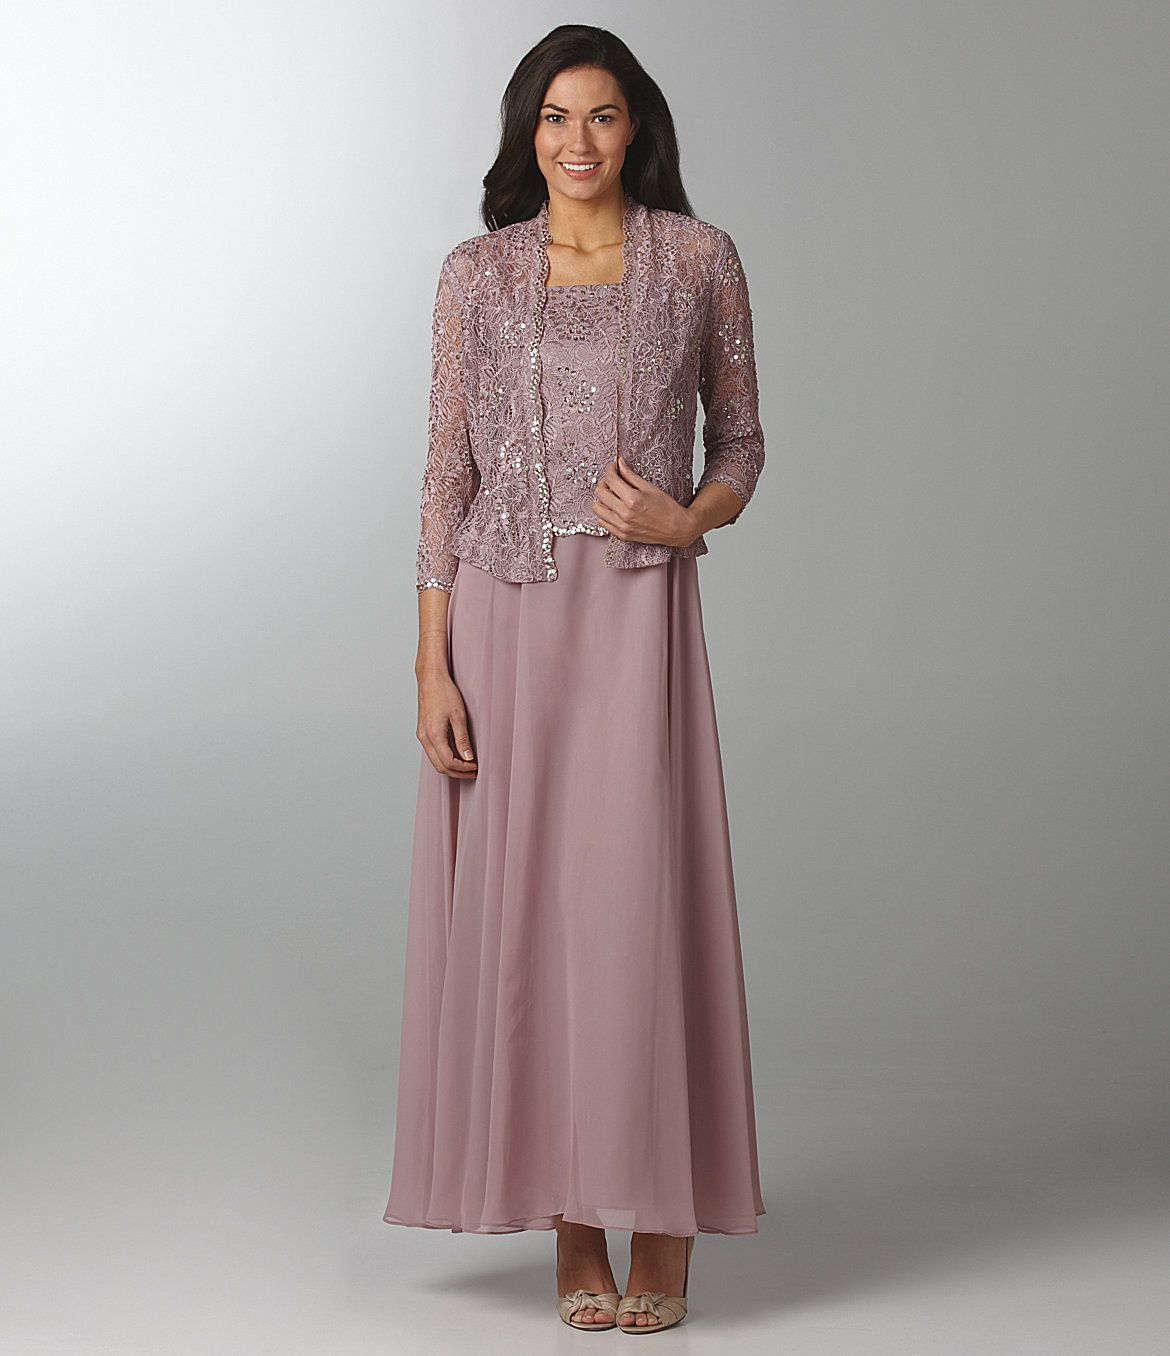 Lace Jacket Dress, Mauve Bridesmaid Dress